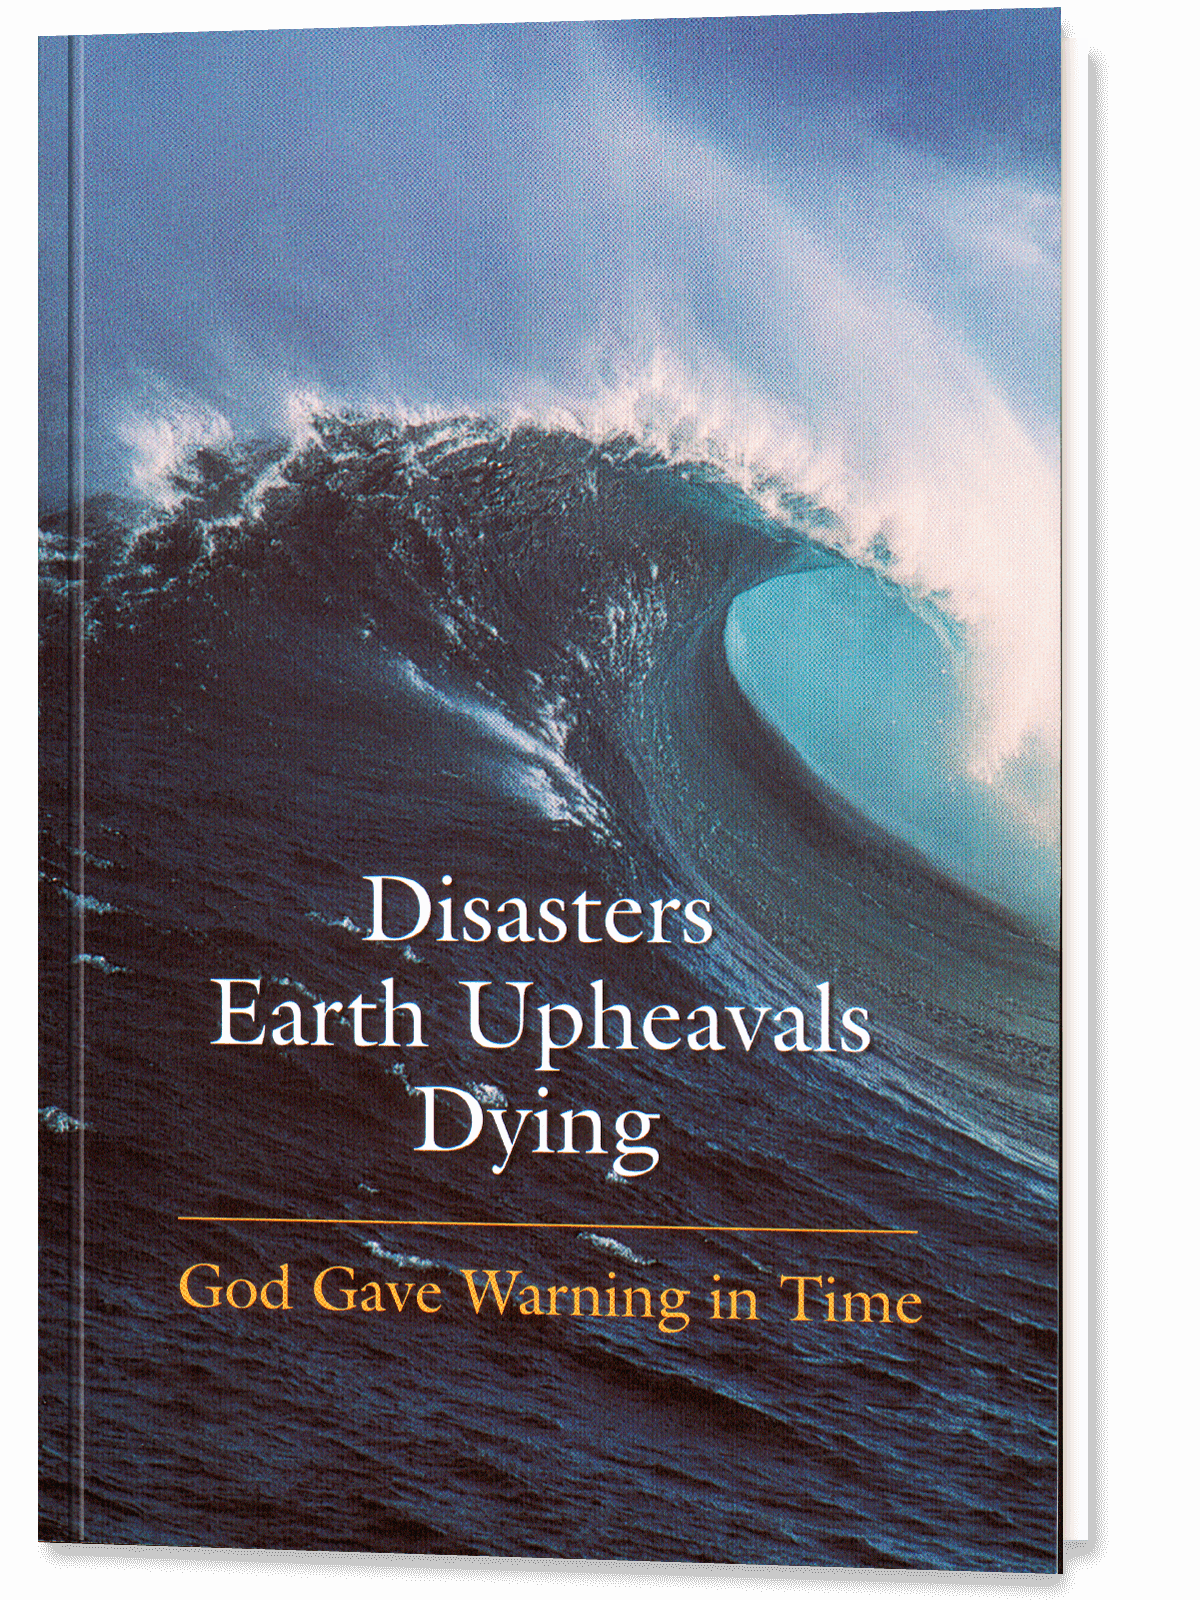 Disasters, Earth Upheavals, Dying